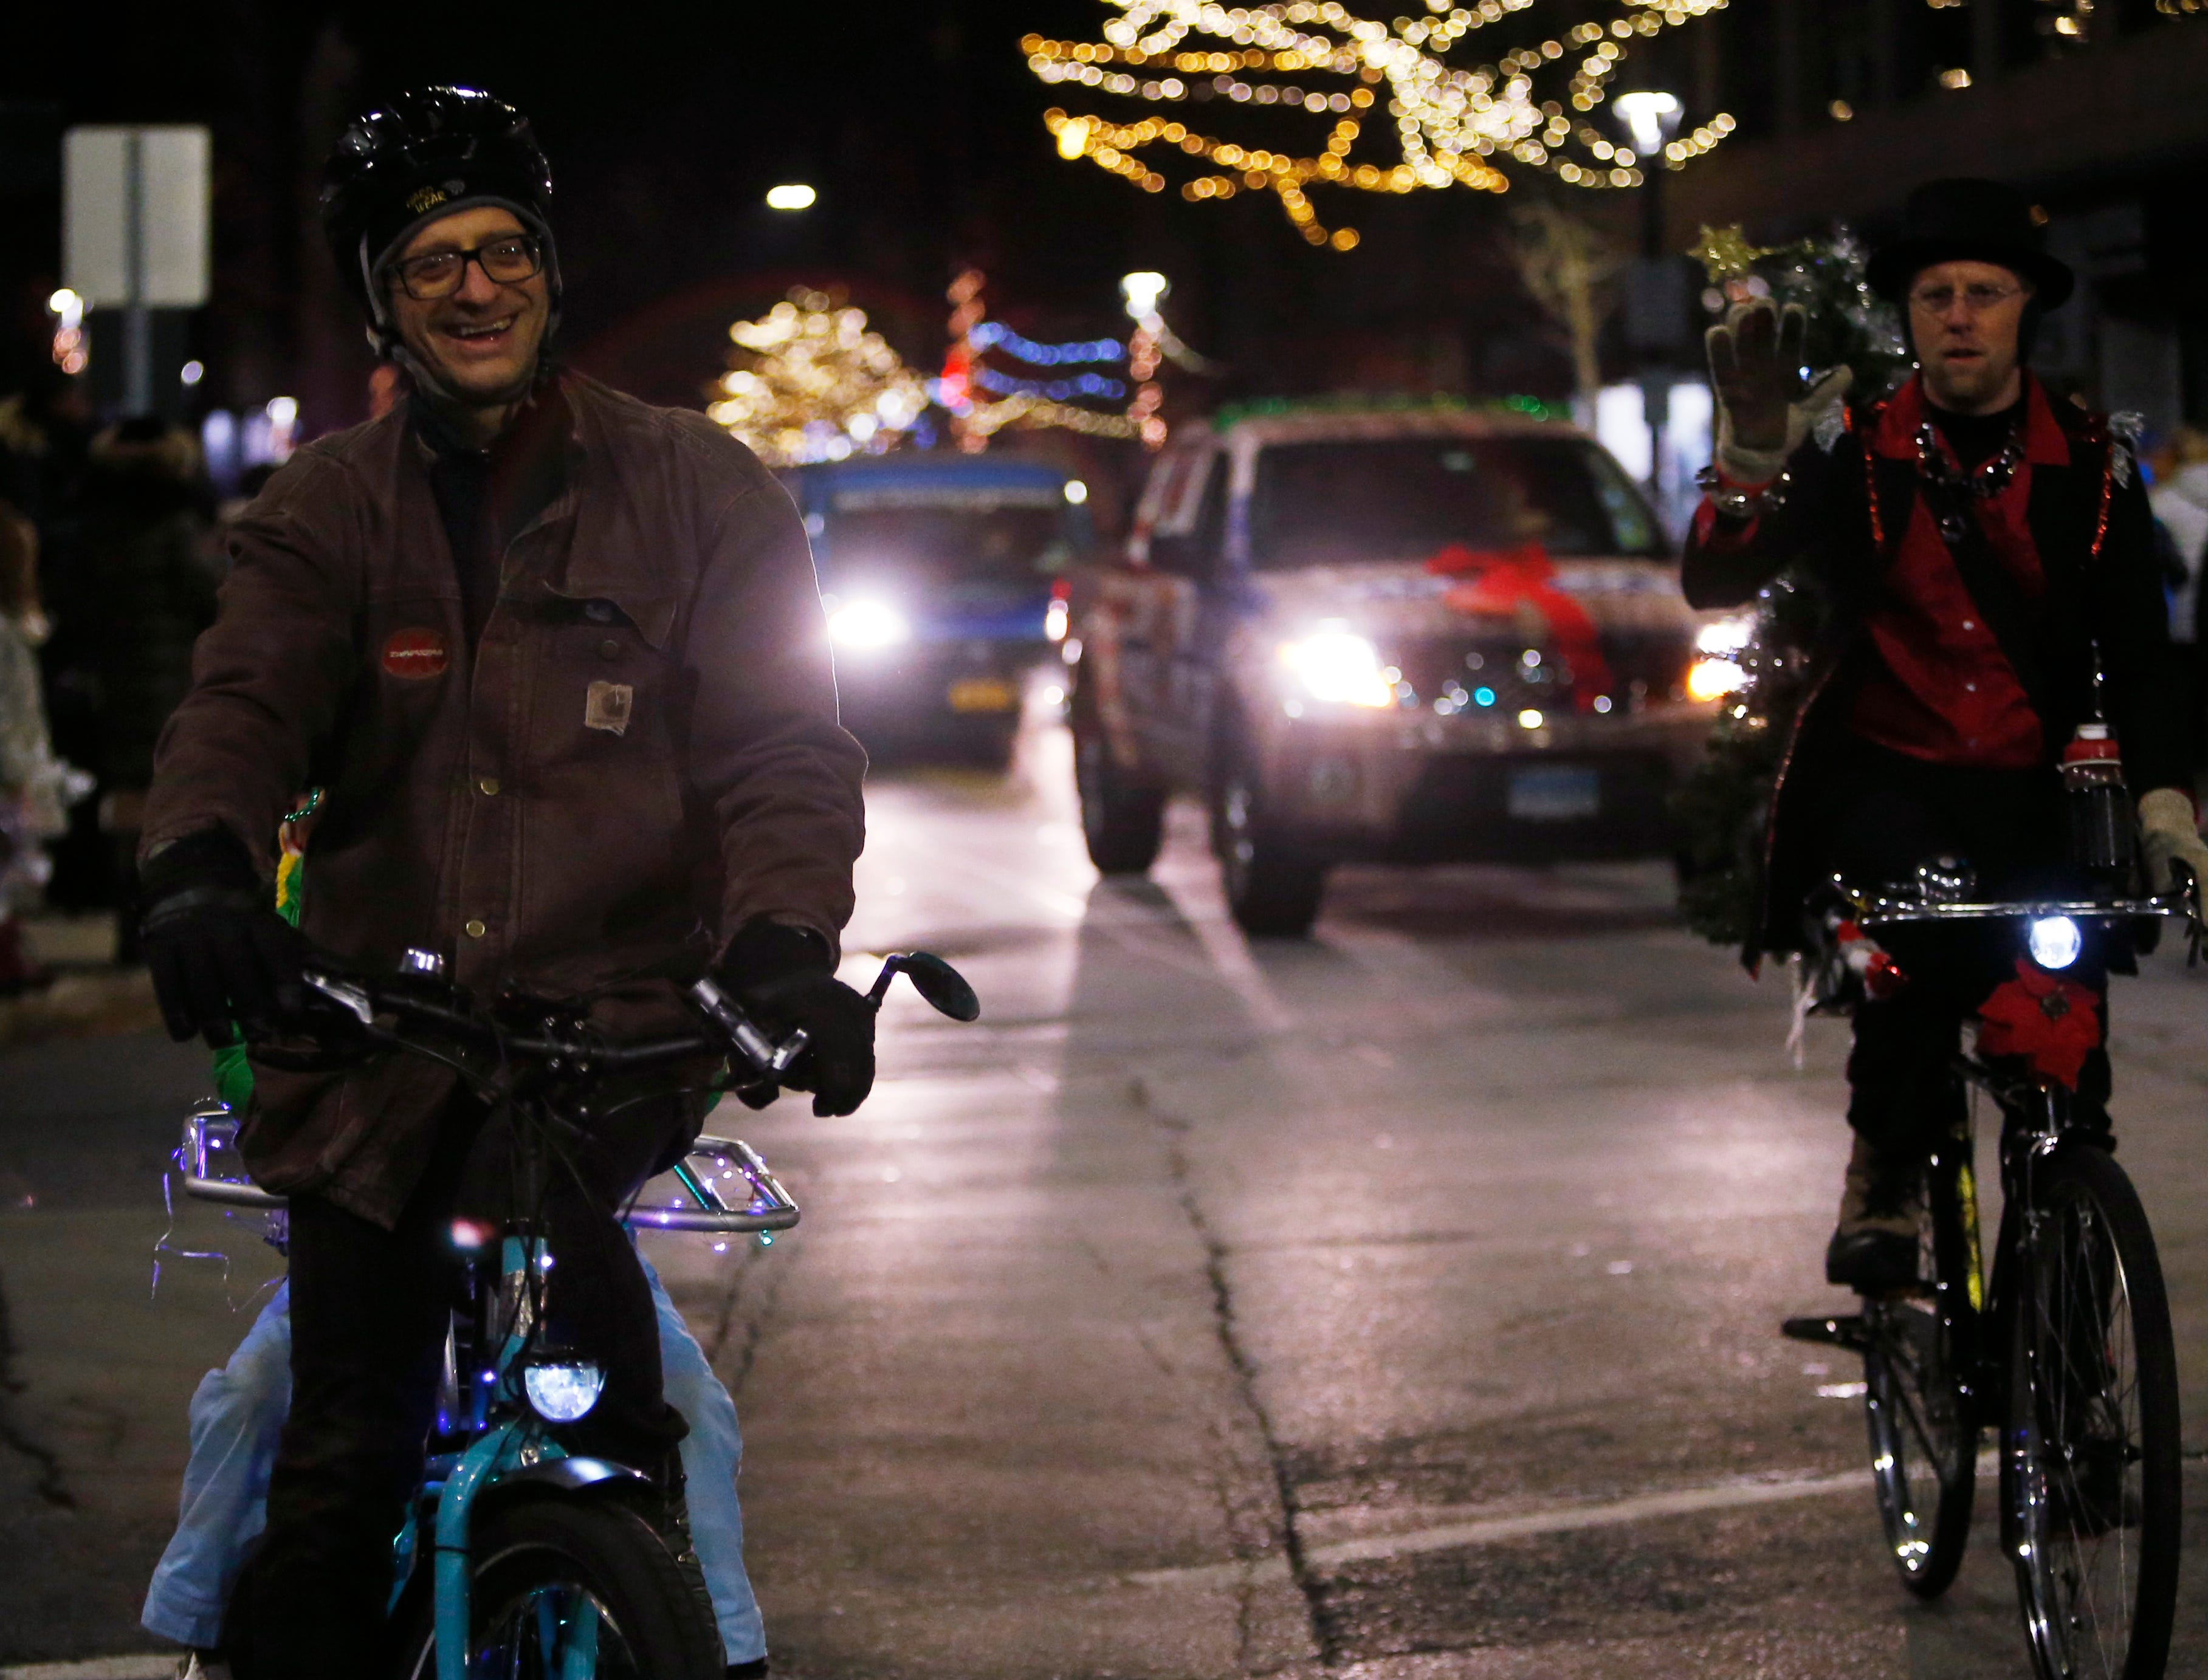 From left, Johnny Galbraith and Frank Richarts pedal in the Celebration of Lights Parade in the City of Poughkeepsie on November 30, 2018.